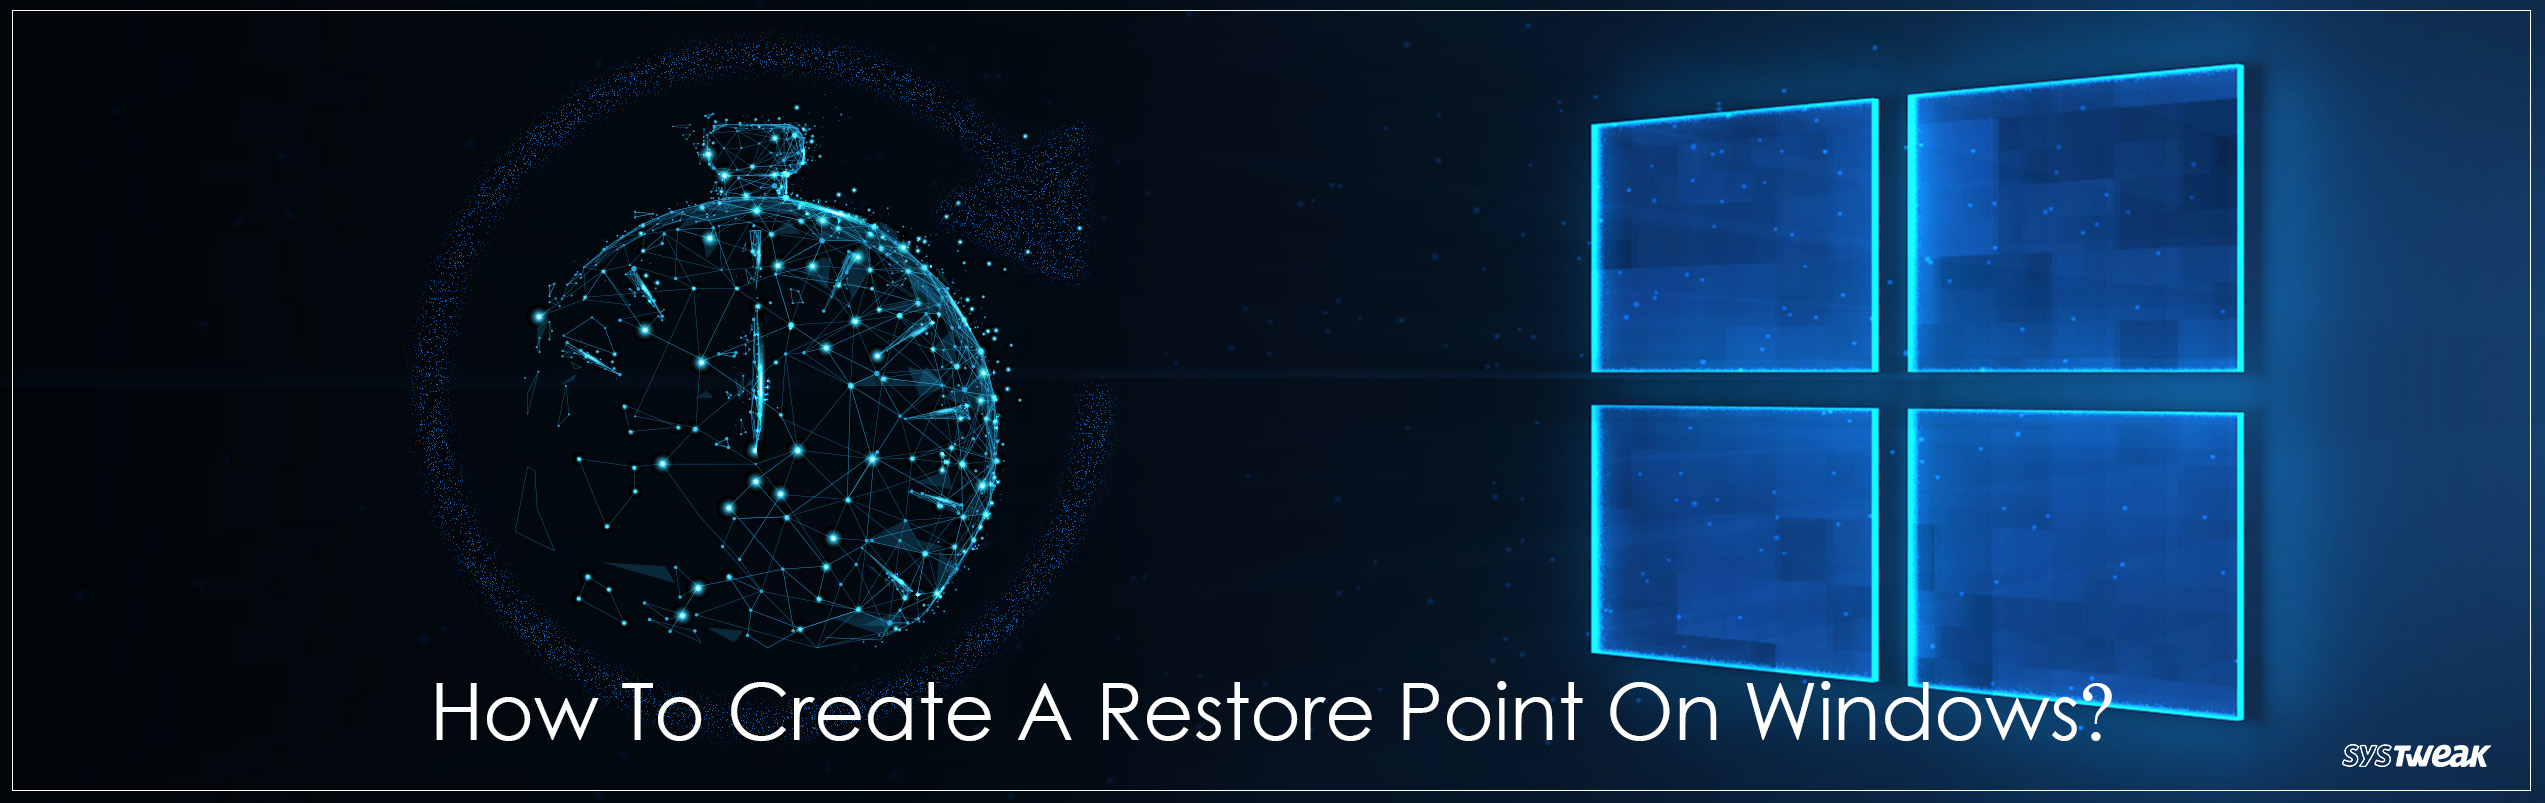 How To Create Restore Point On Windows 10, 8, 7, Vista and XP